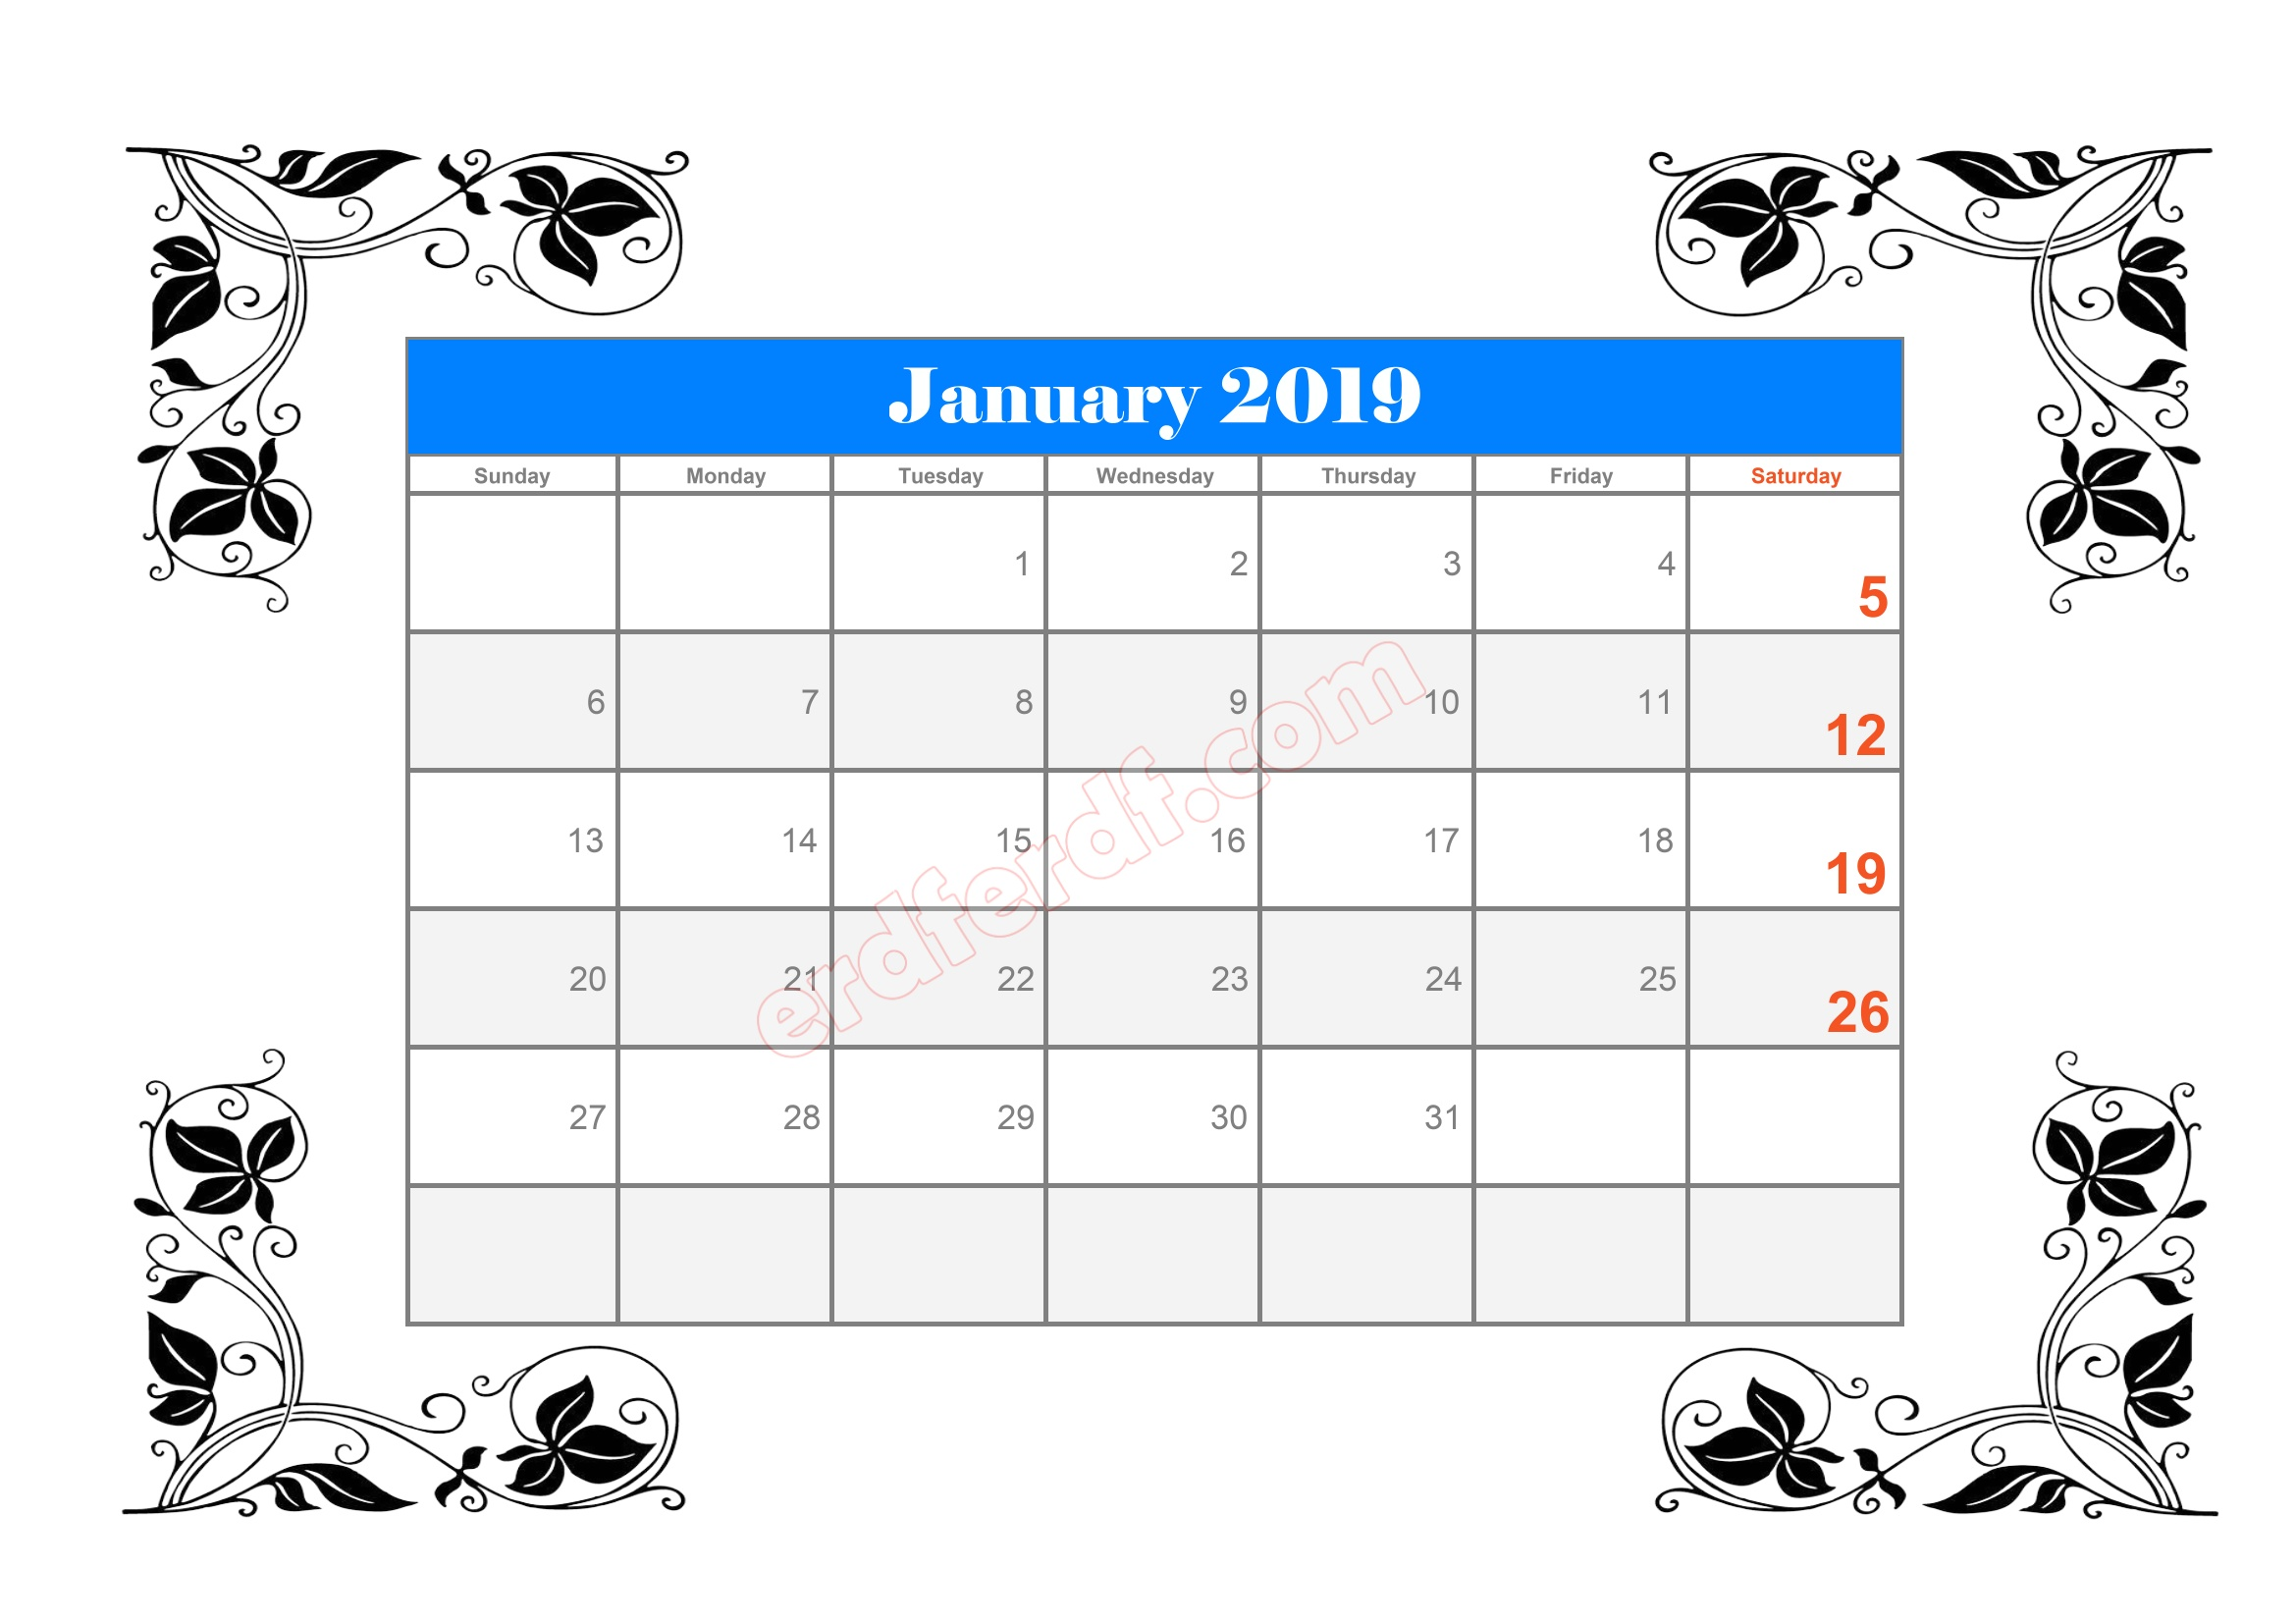 3 10 Blank Calendar 2019 January Sample